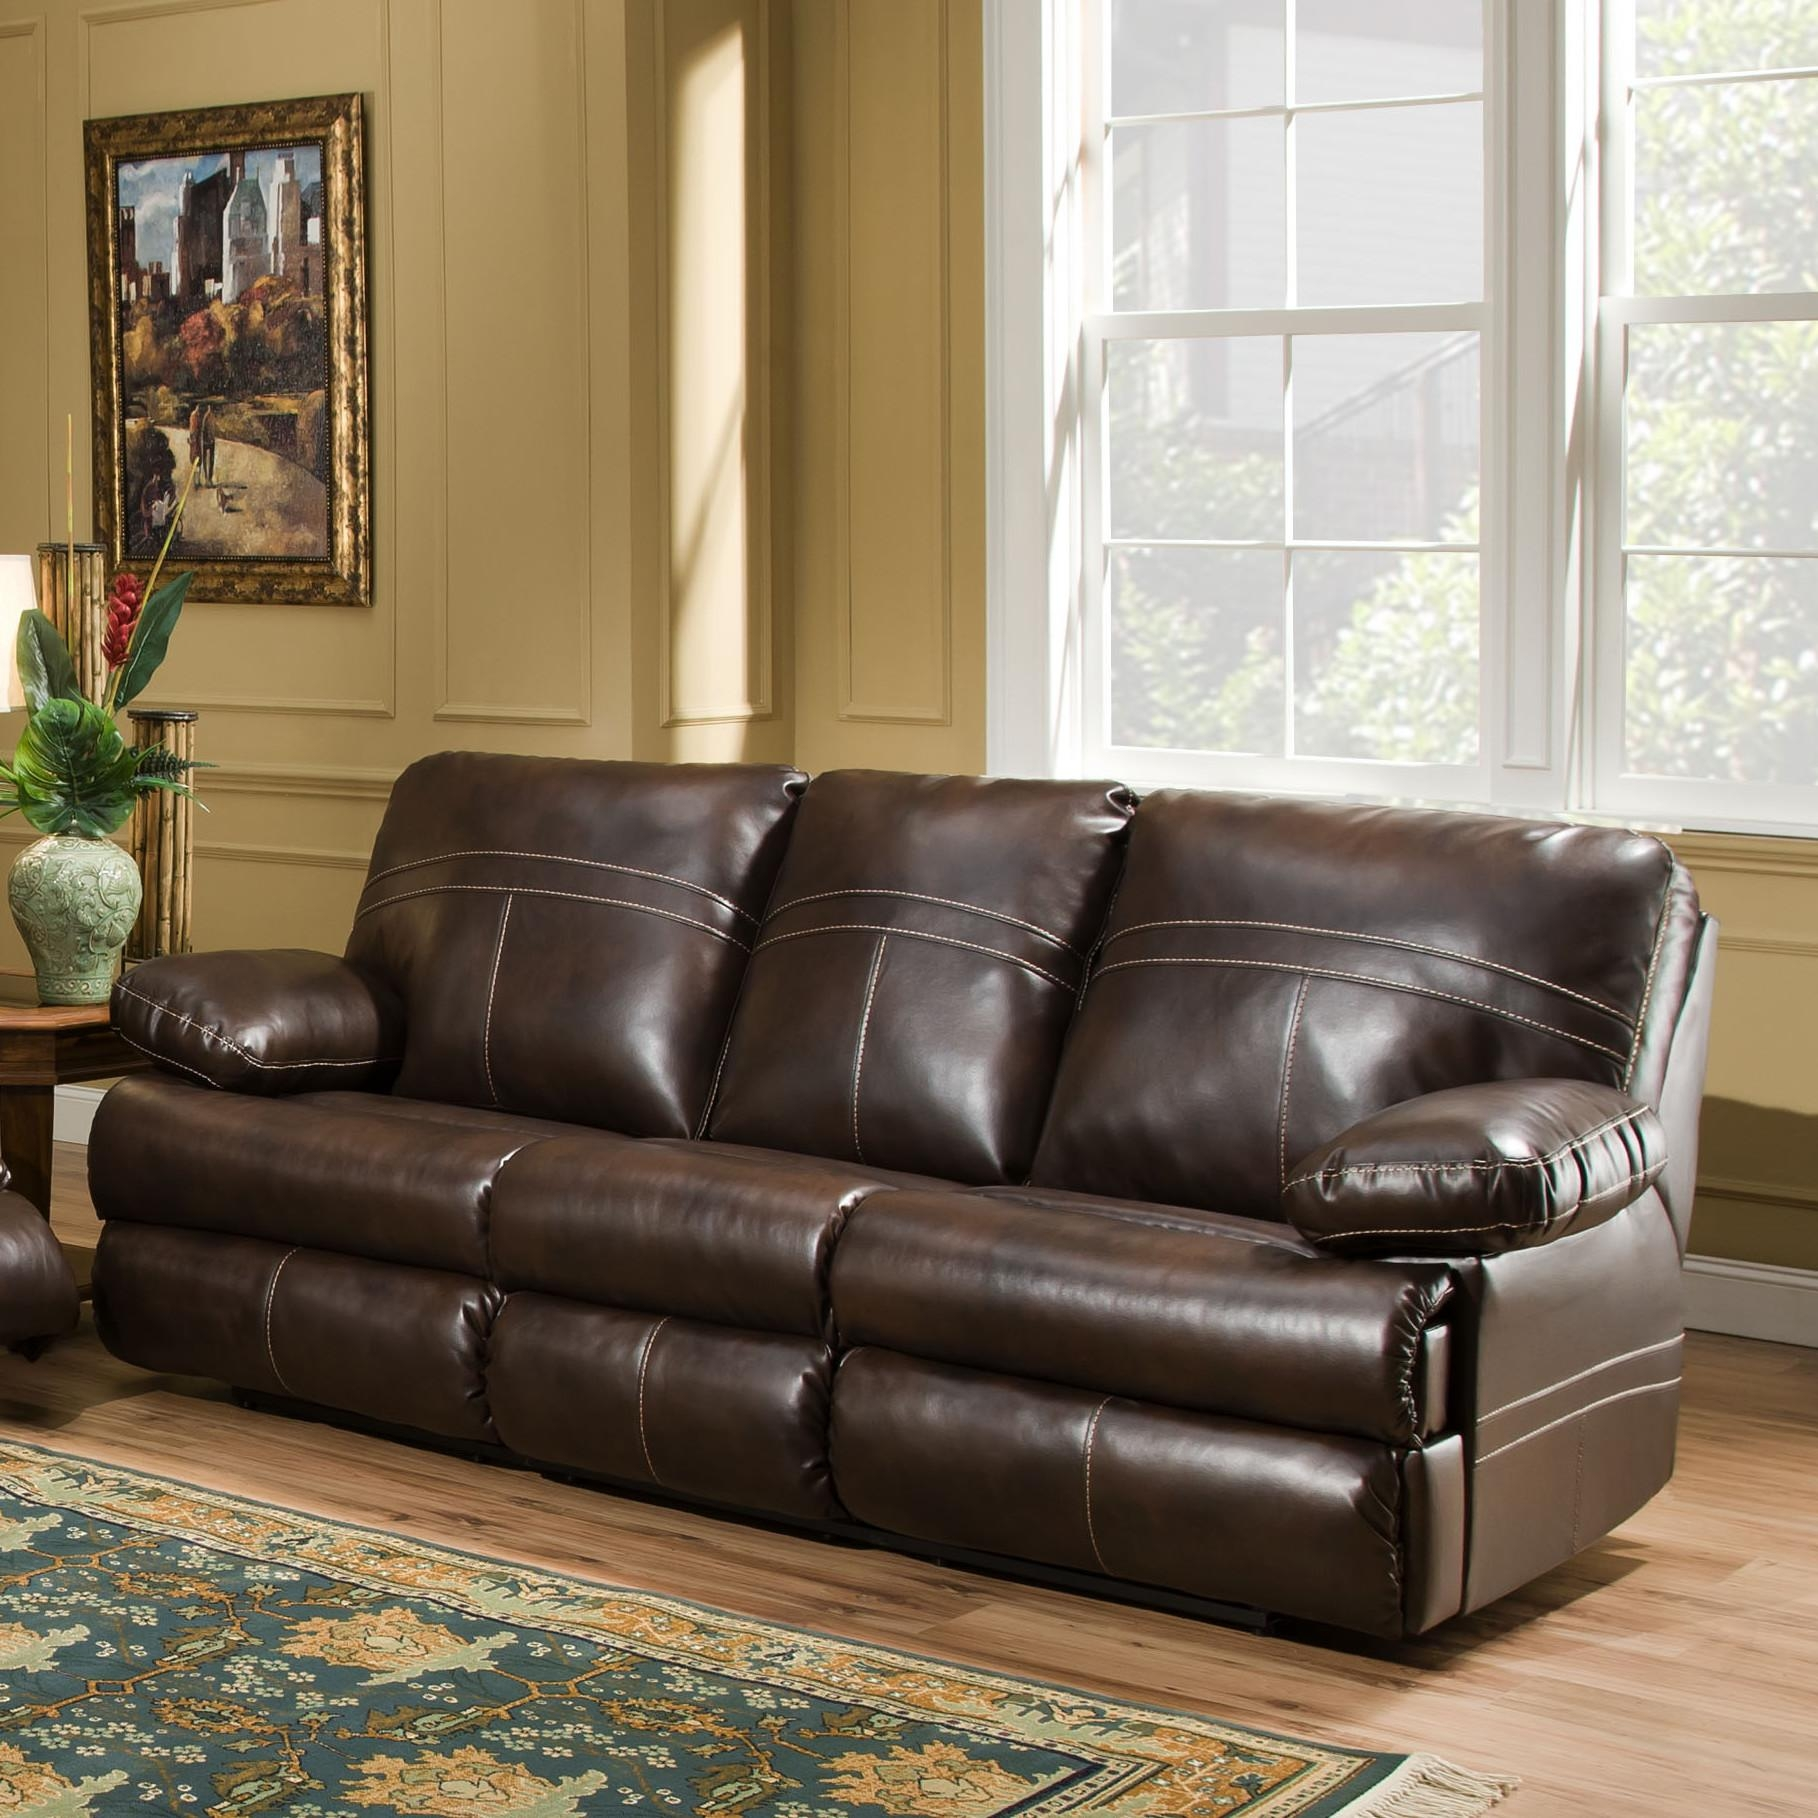 Furniture: Simmons Sectional For Comfortable Seating — Threestems In Big Lots Couches (View 9 of 20)